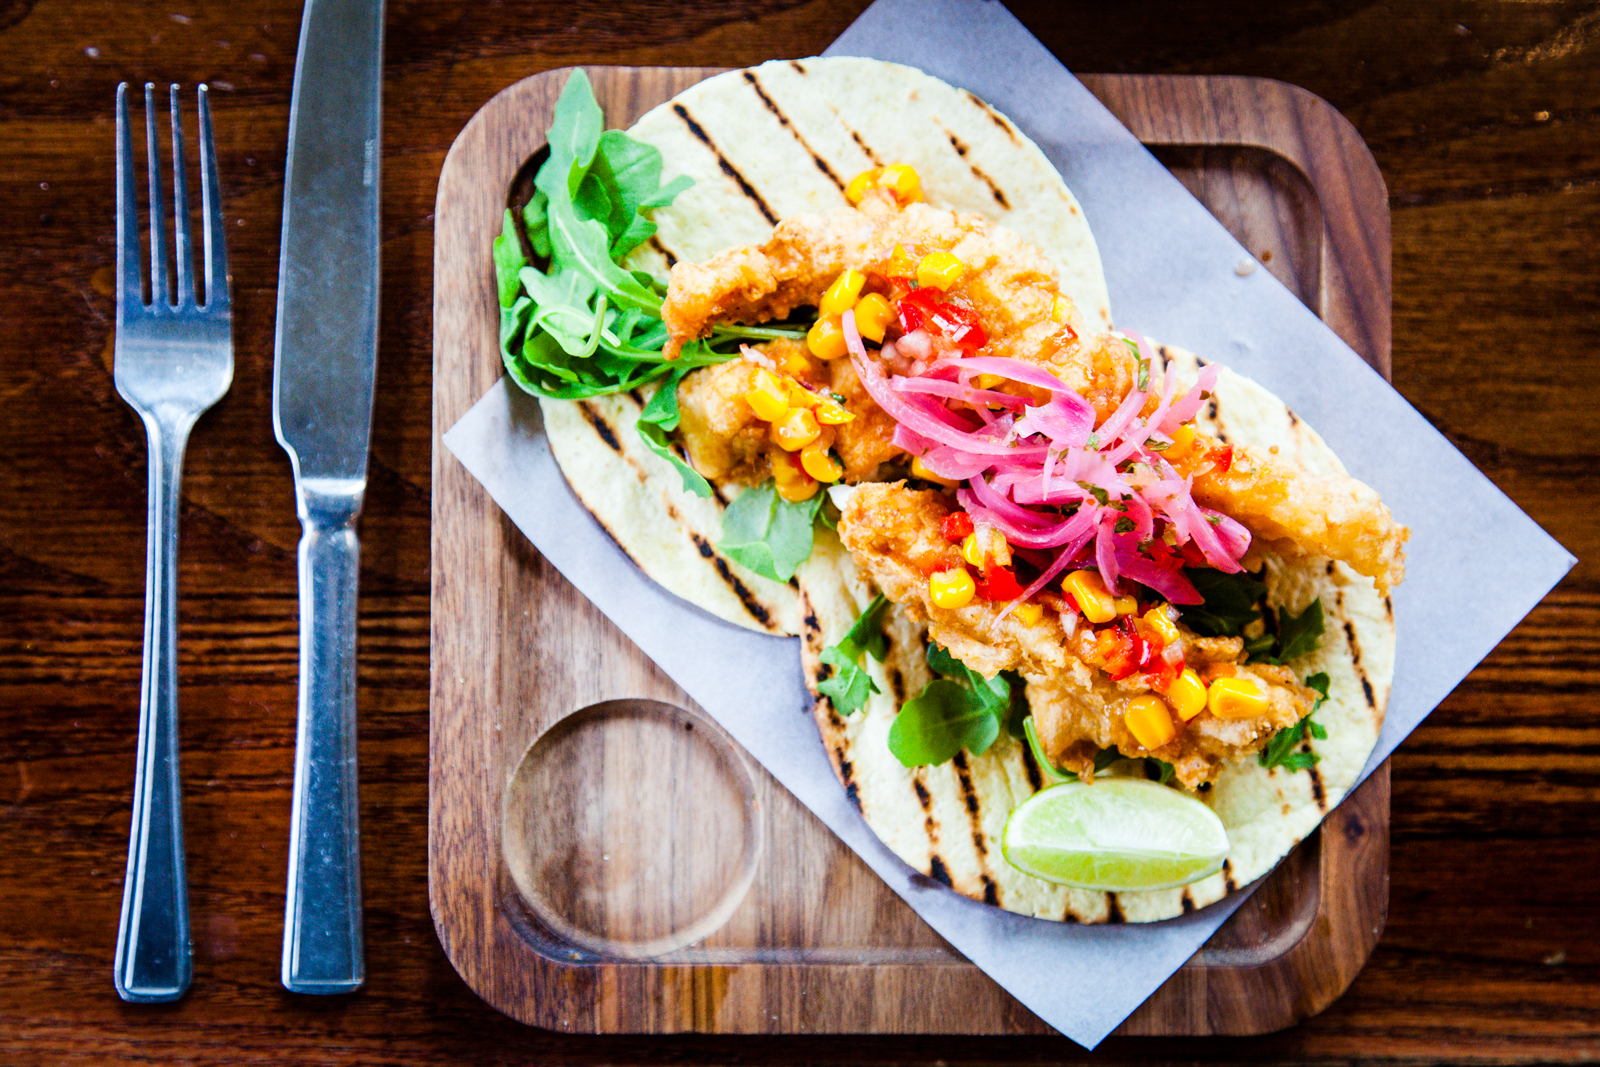 Reserve a table at Las Iguanas - Cheshire Oaks